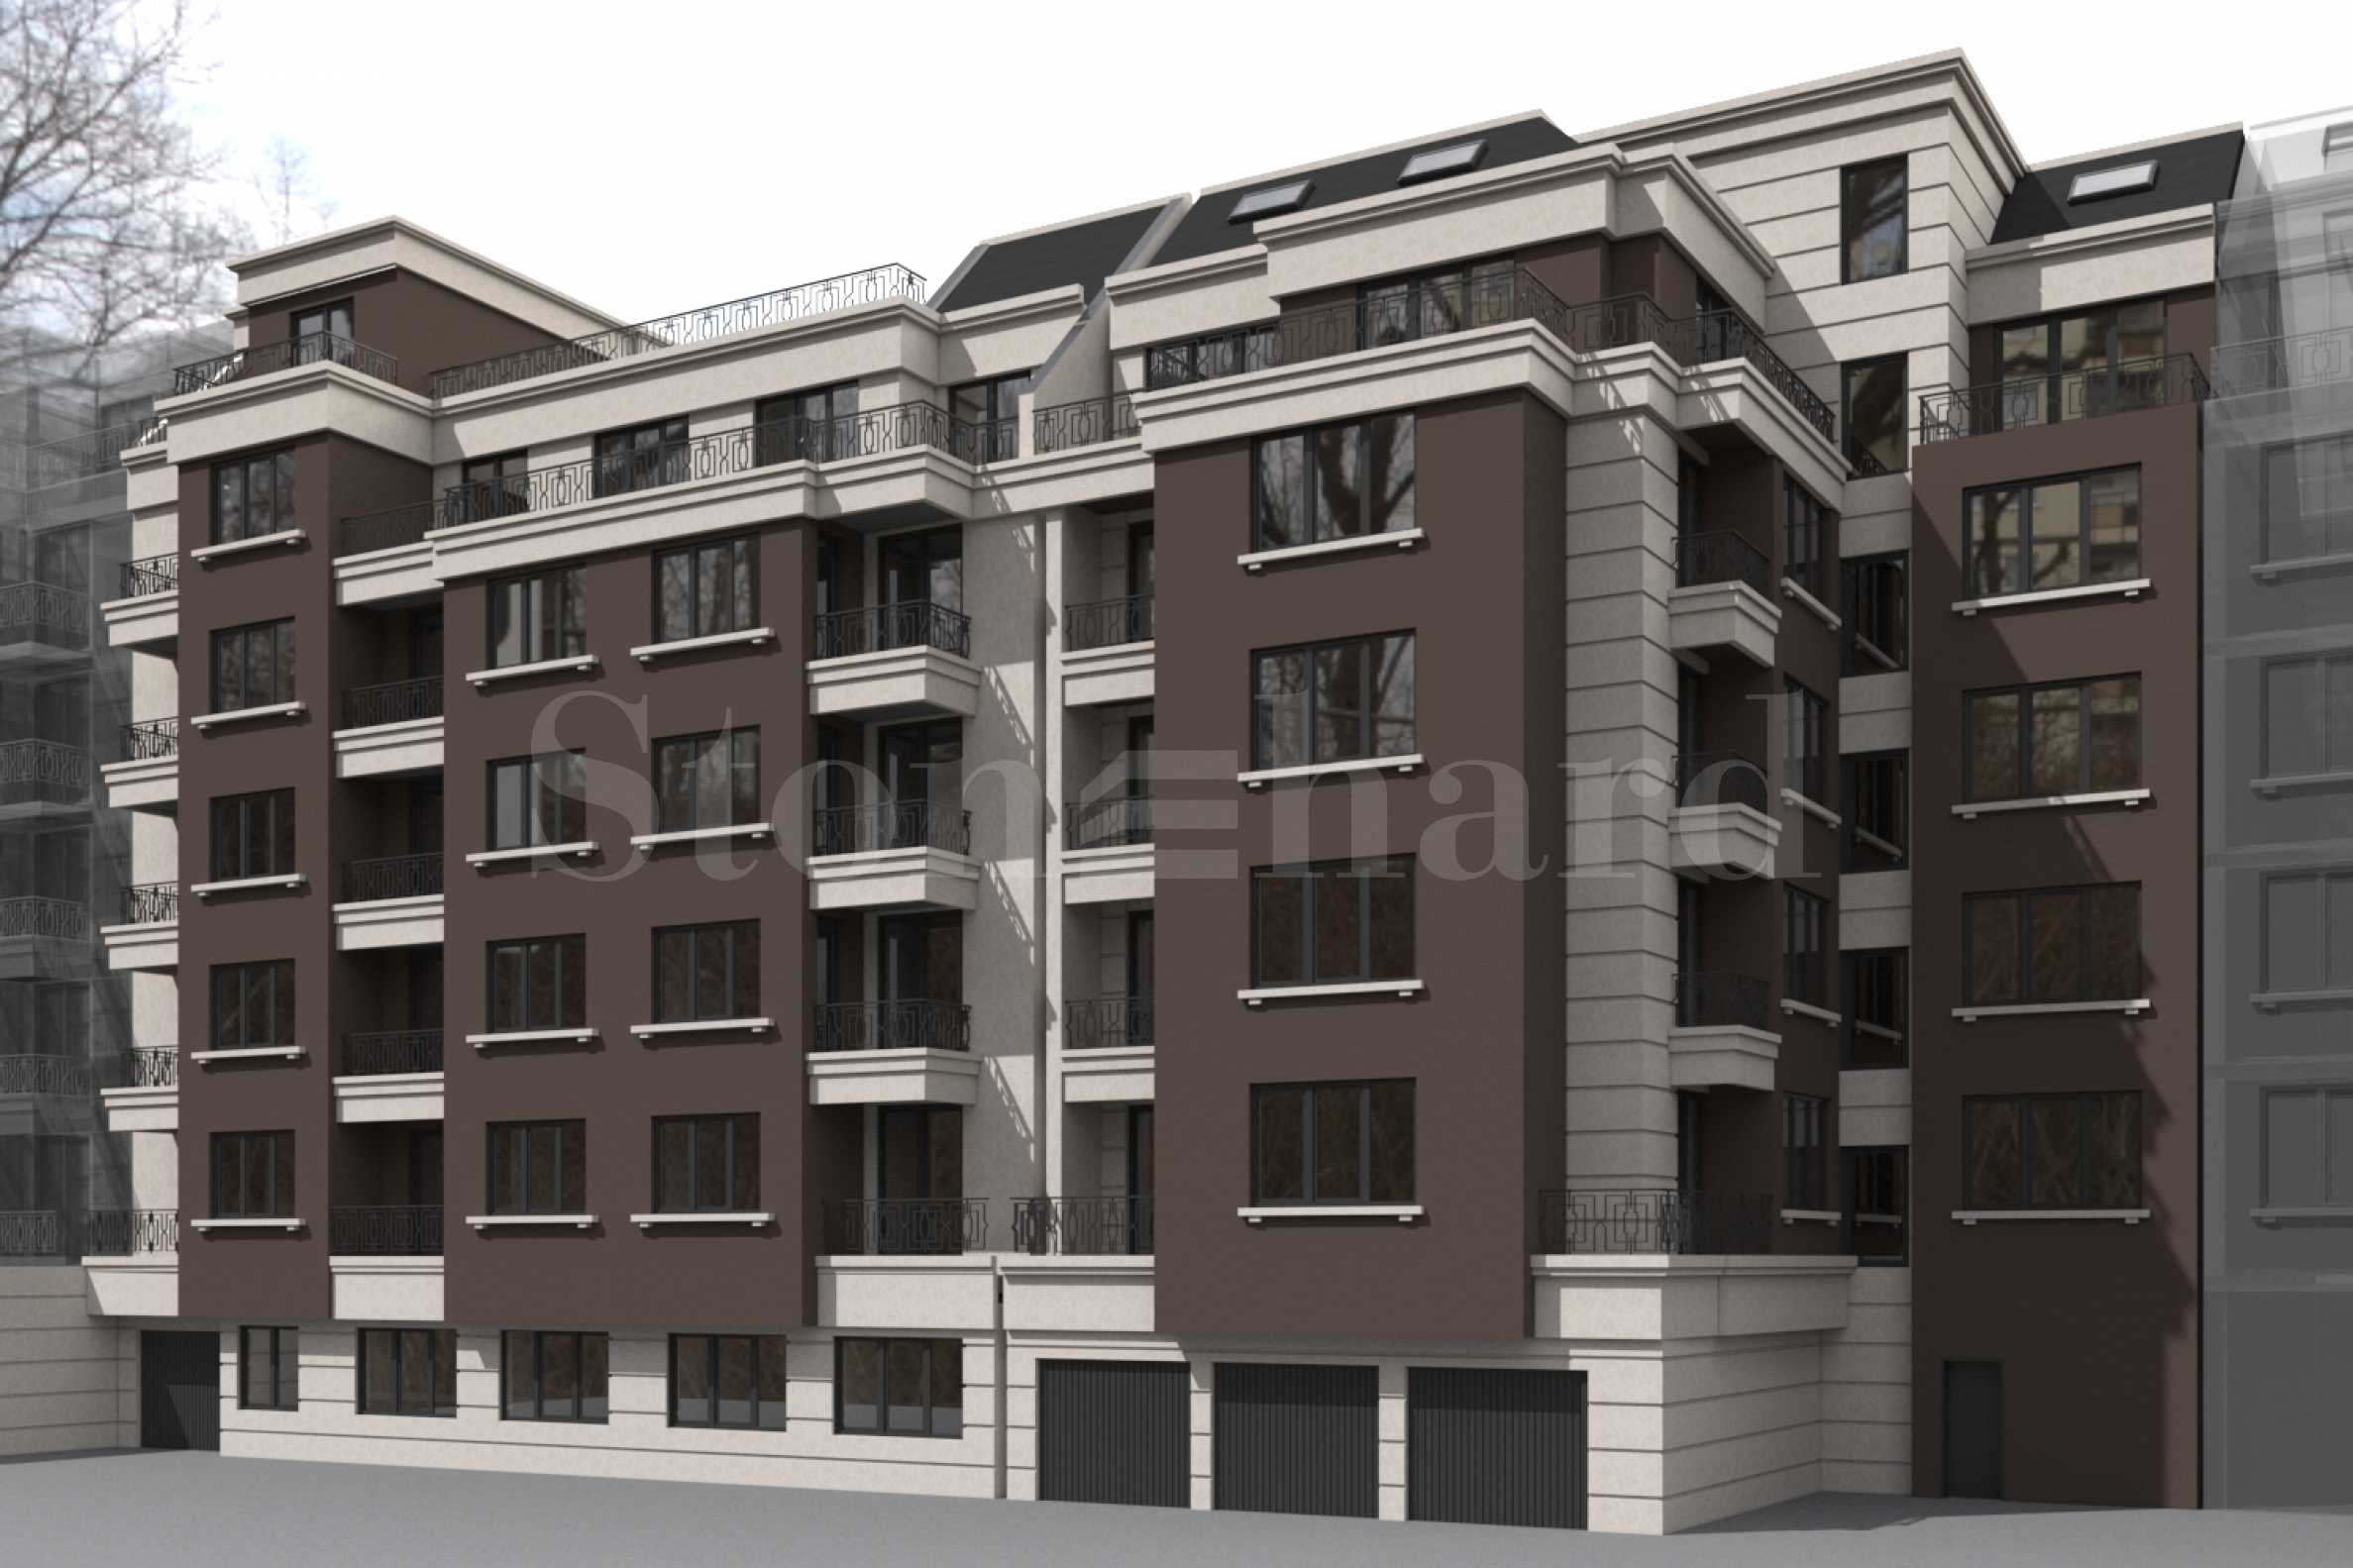 New building near Lion's Bridge with one and two bedroom apartments for sale1 - Stonehard